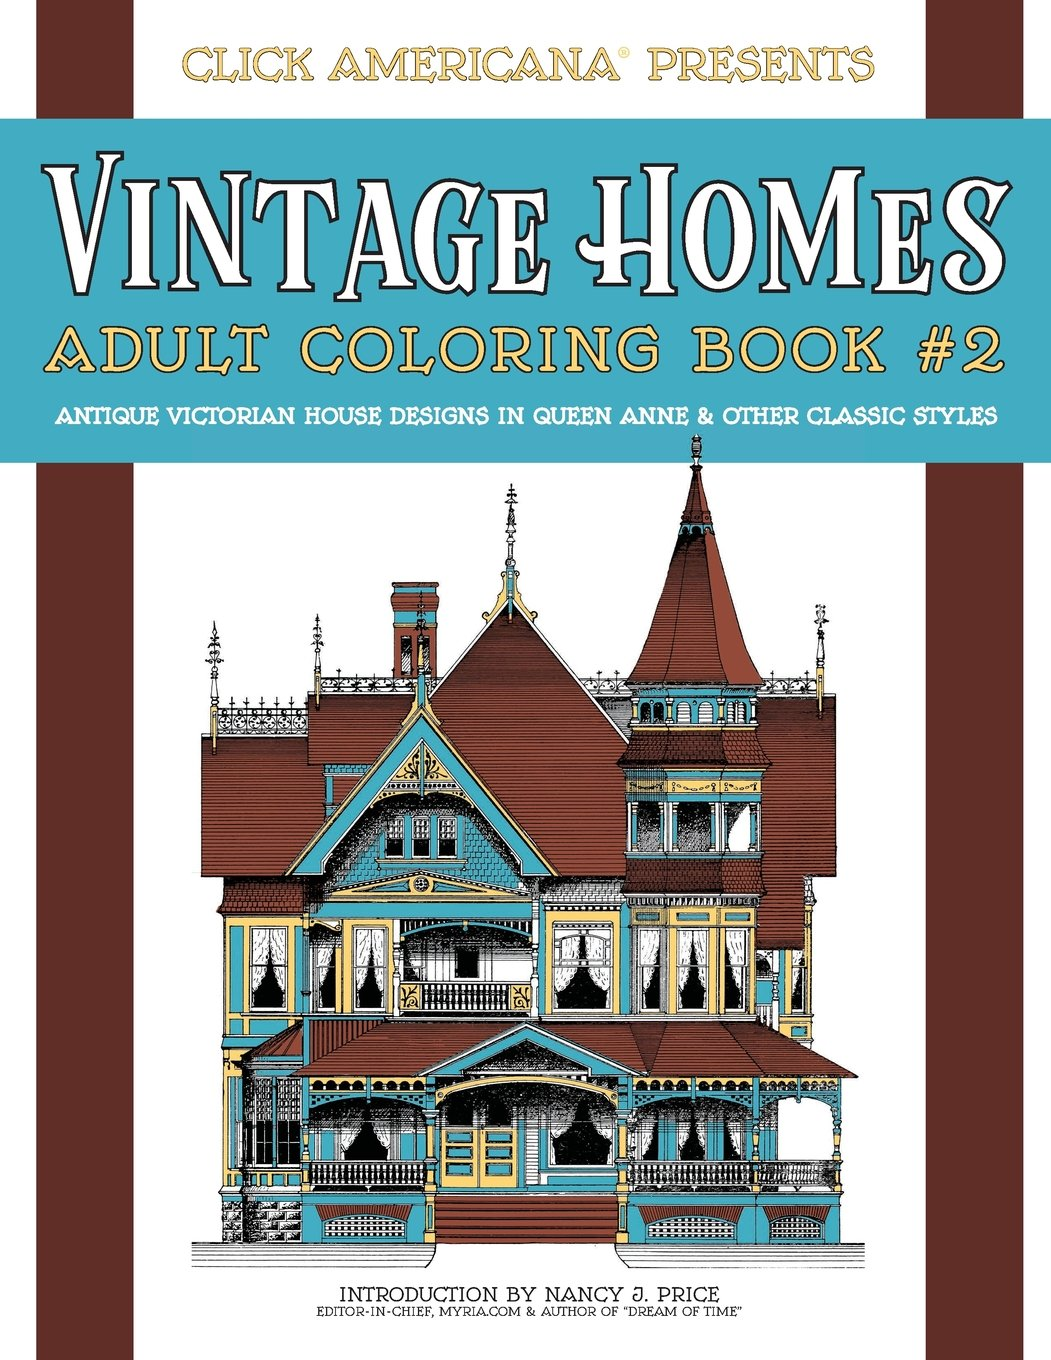 Coloring book real estate - Amazon Com Vintage Homes Adult Coloring Book Antique Victorian House Designs In Queen Anne Other Classic Styles Volume 2 9781944633363 Nancy J